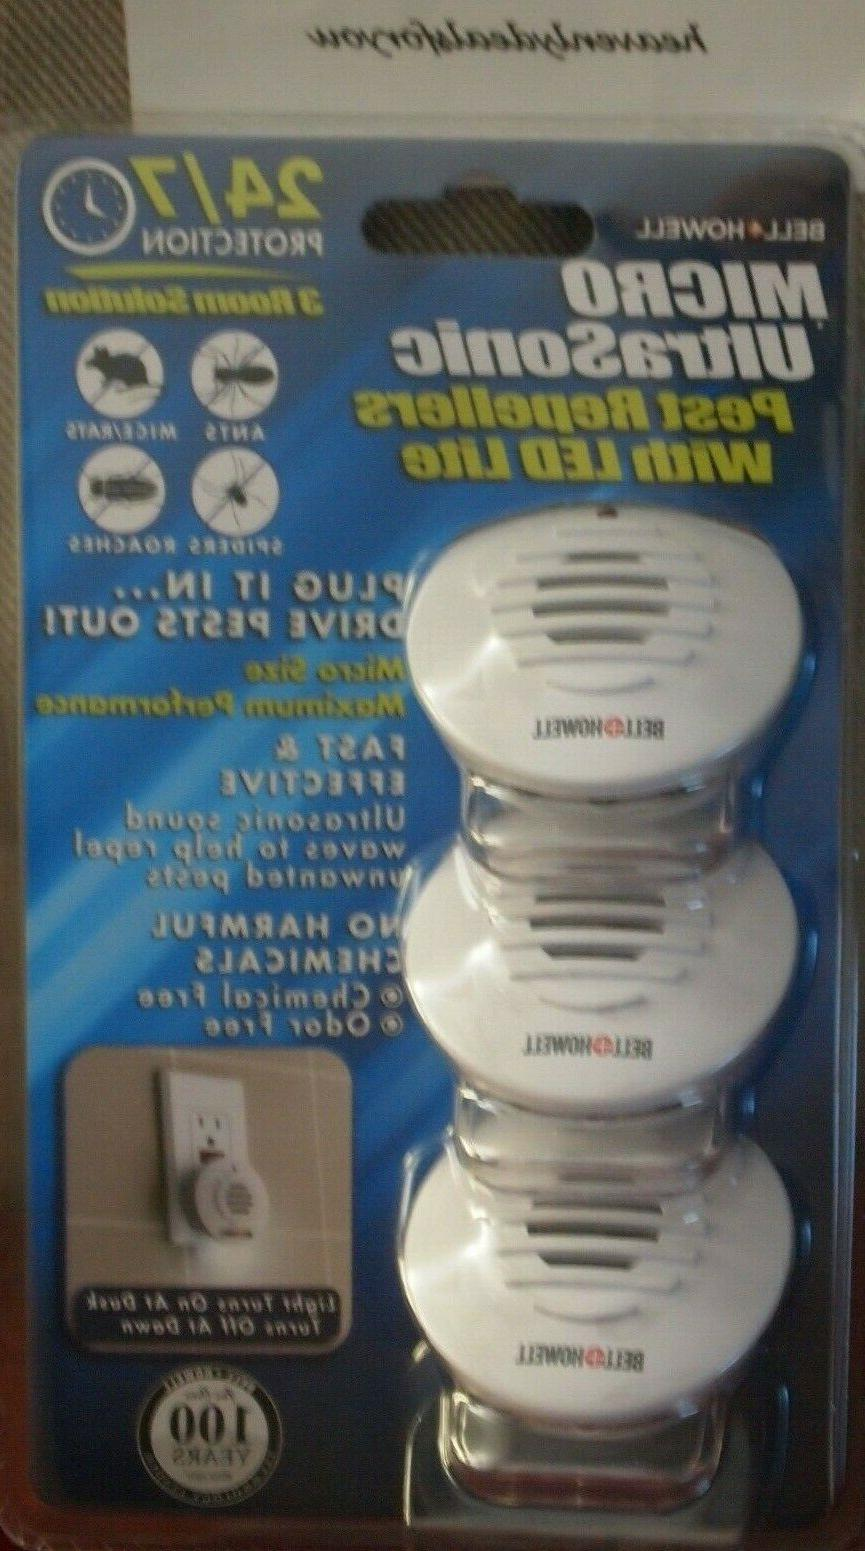 nip sealed bell howell micro ultrasonic pest